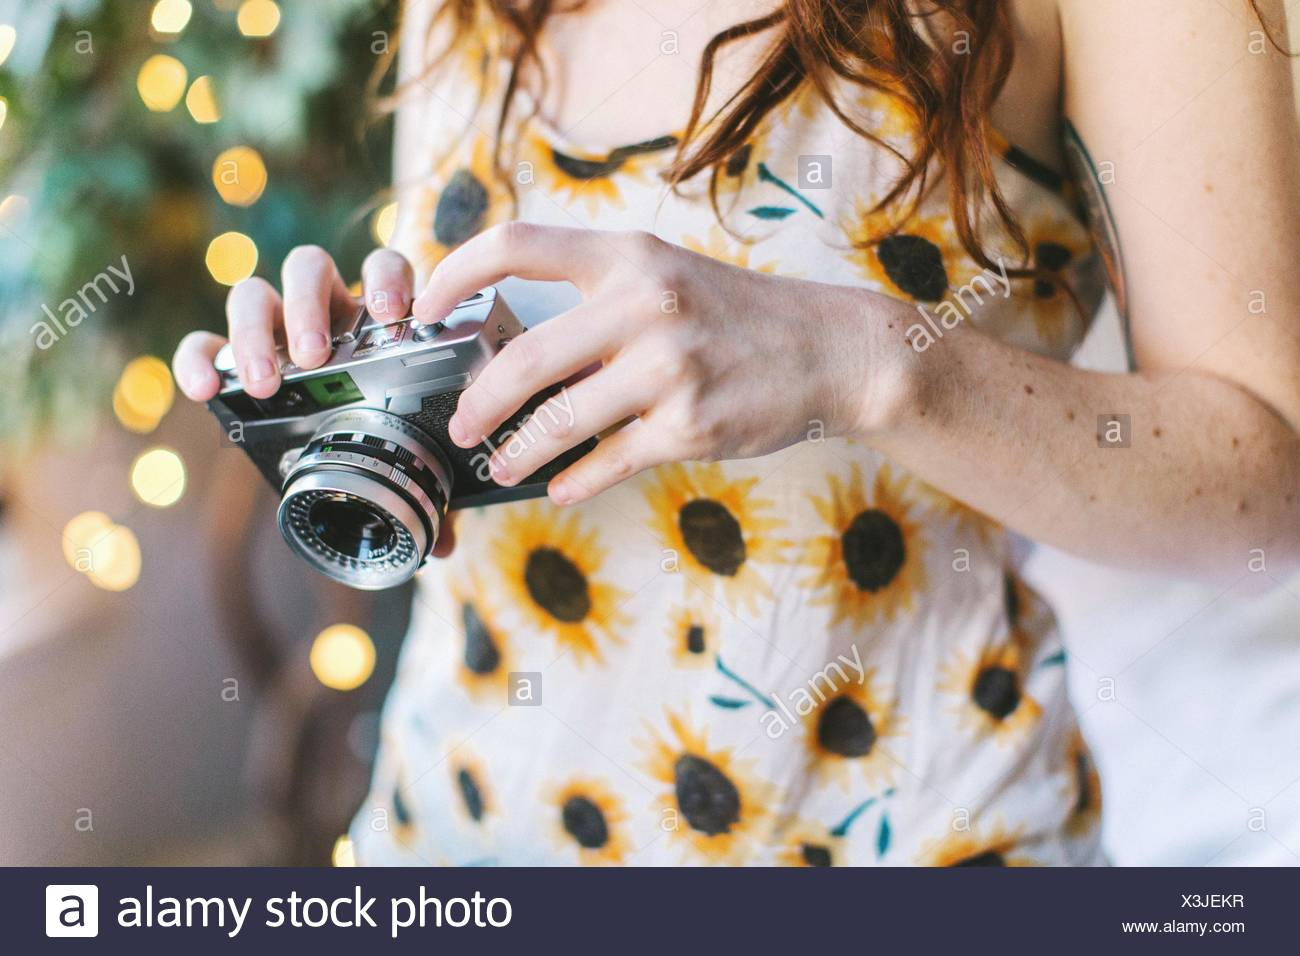 Young woman SLR camera, mid section - Stock Image